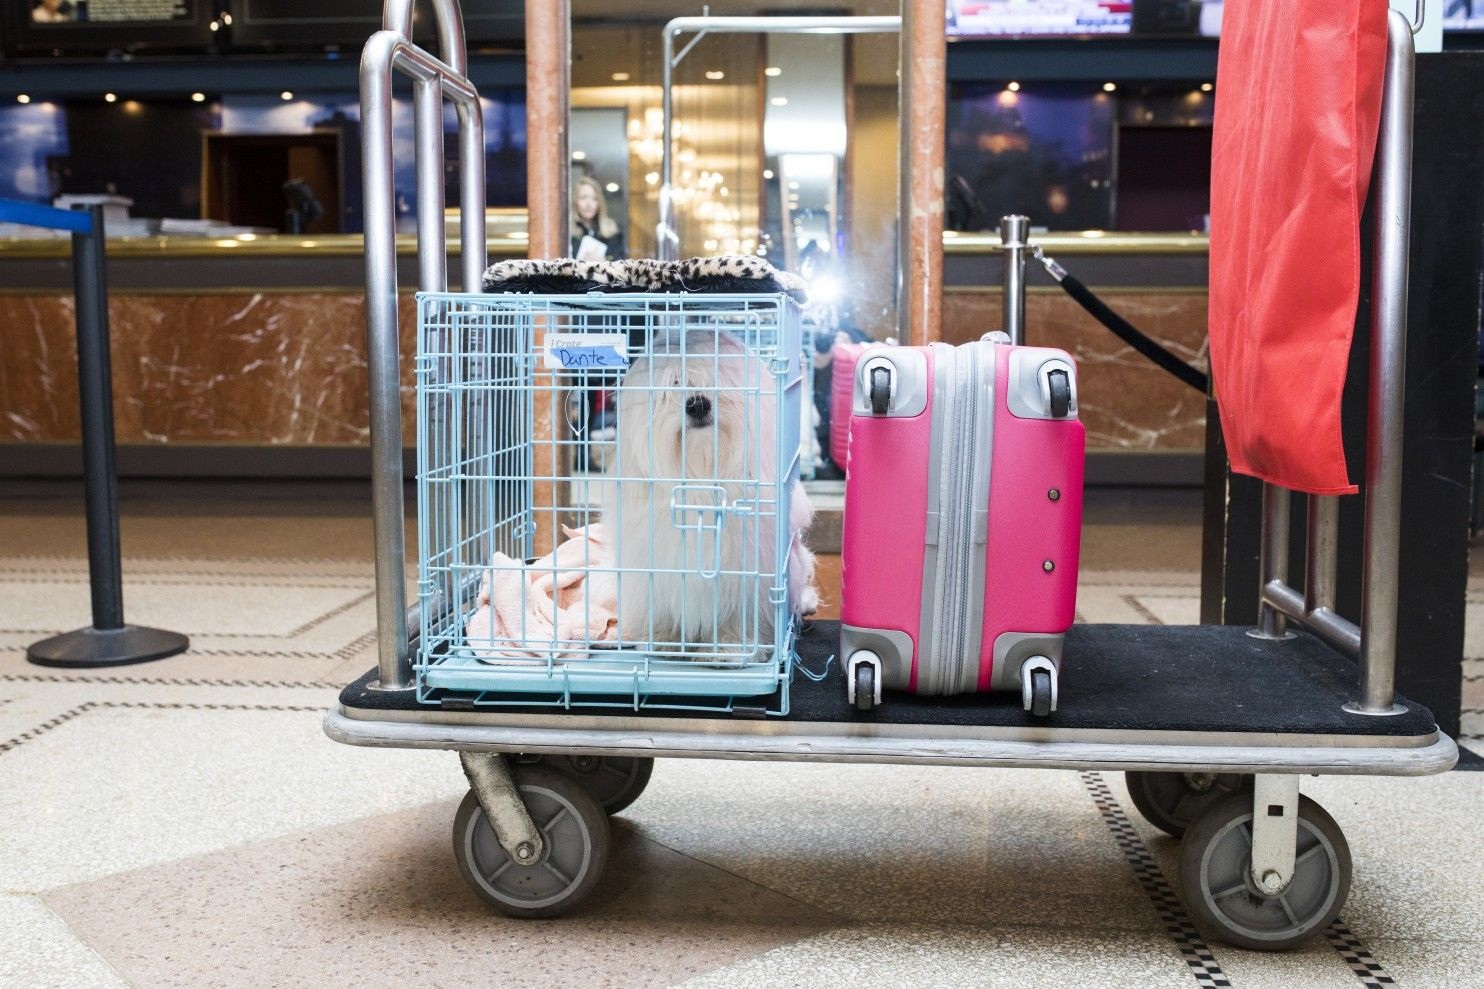 Dog treadmills and fake fire hydrants: How hotels host Westminster show dogs